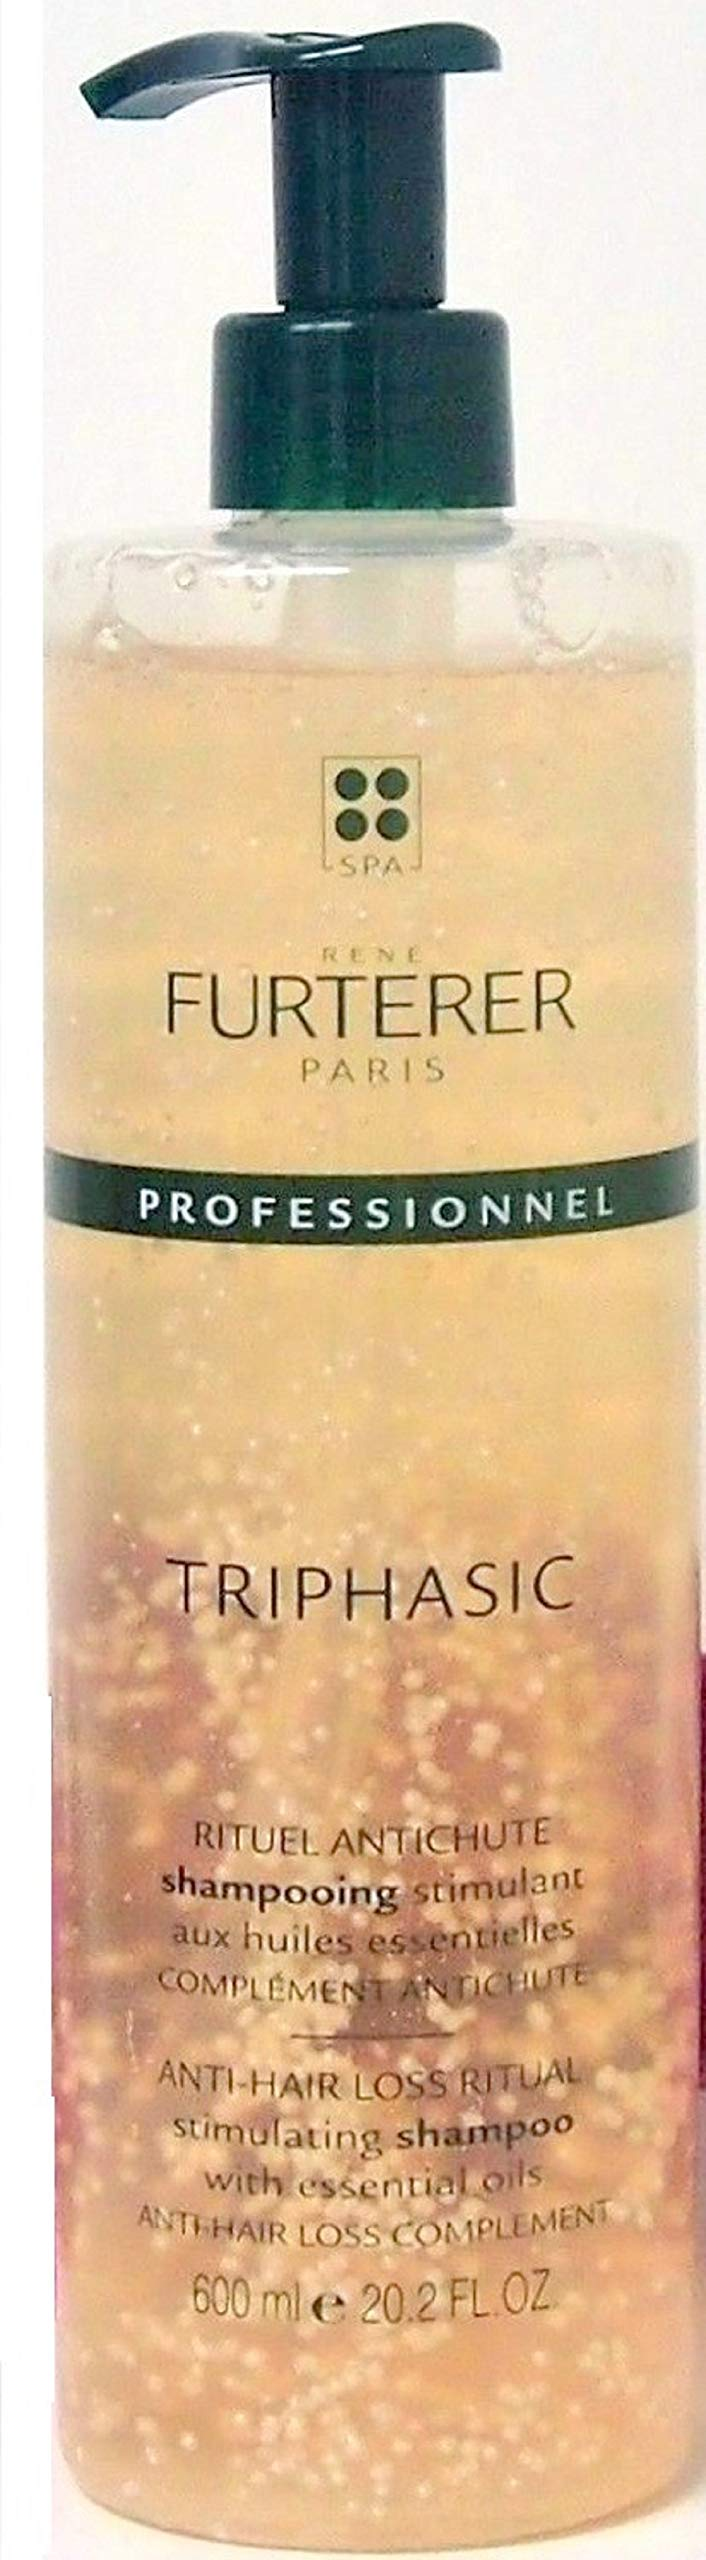 Anti Hair Loss Triphasic Stimulating Shampoo 20.2 Oz 600 ml